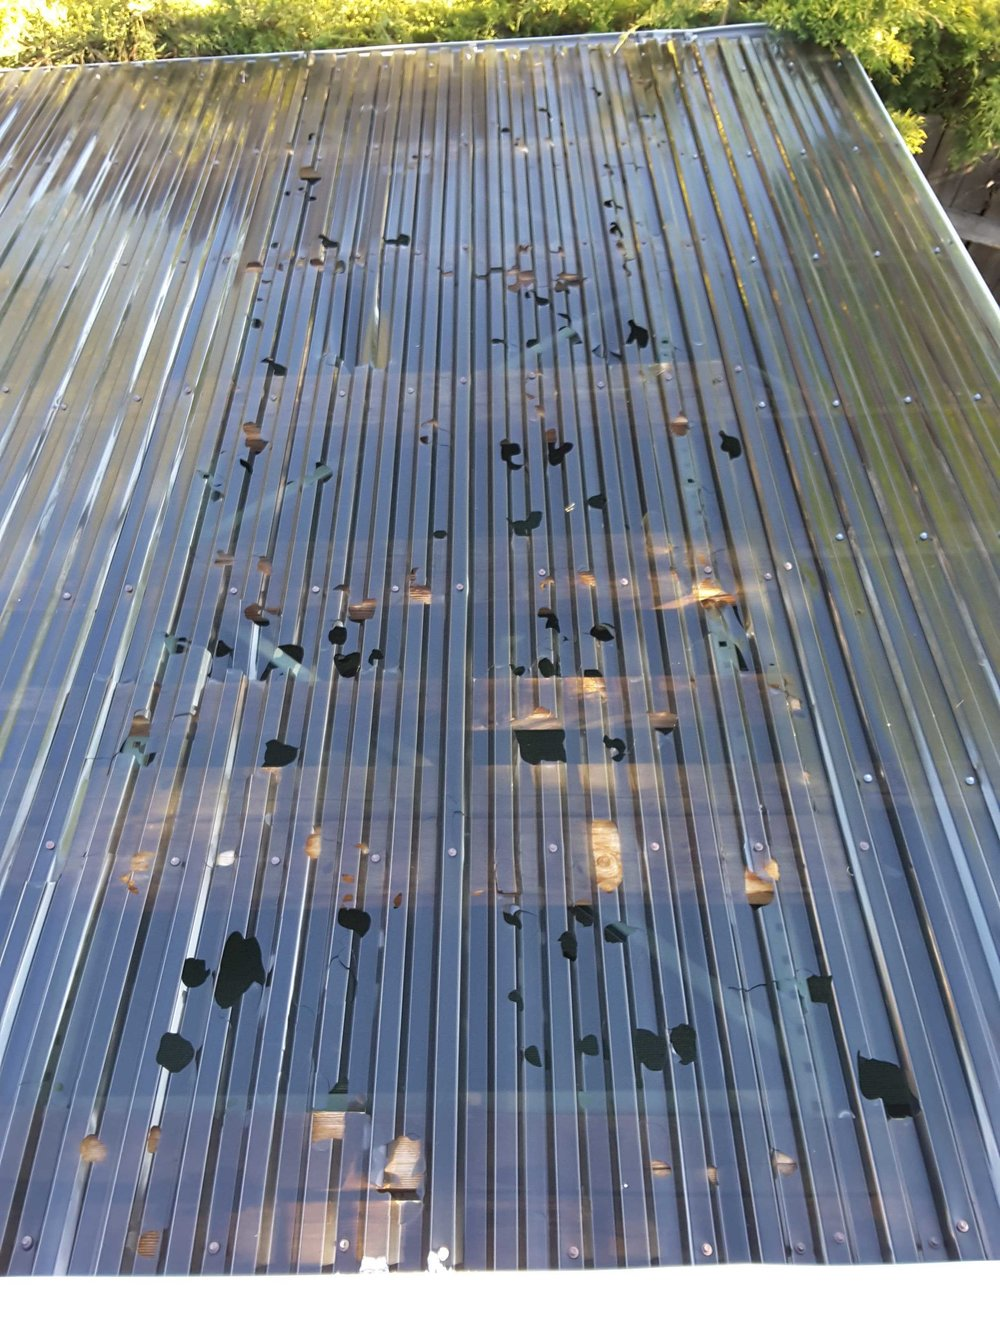 If your in an area that receives any hail, corrugated plastic is a horrible choice for a roofing material.